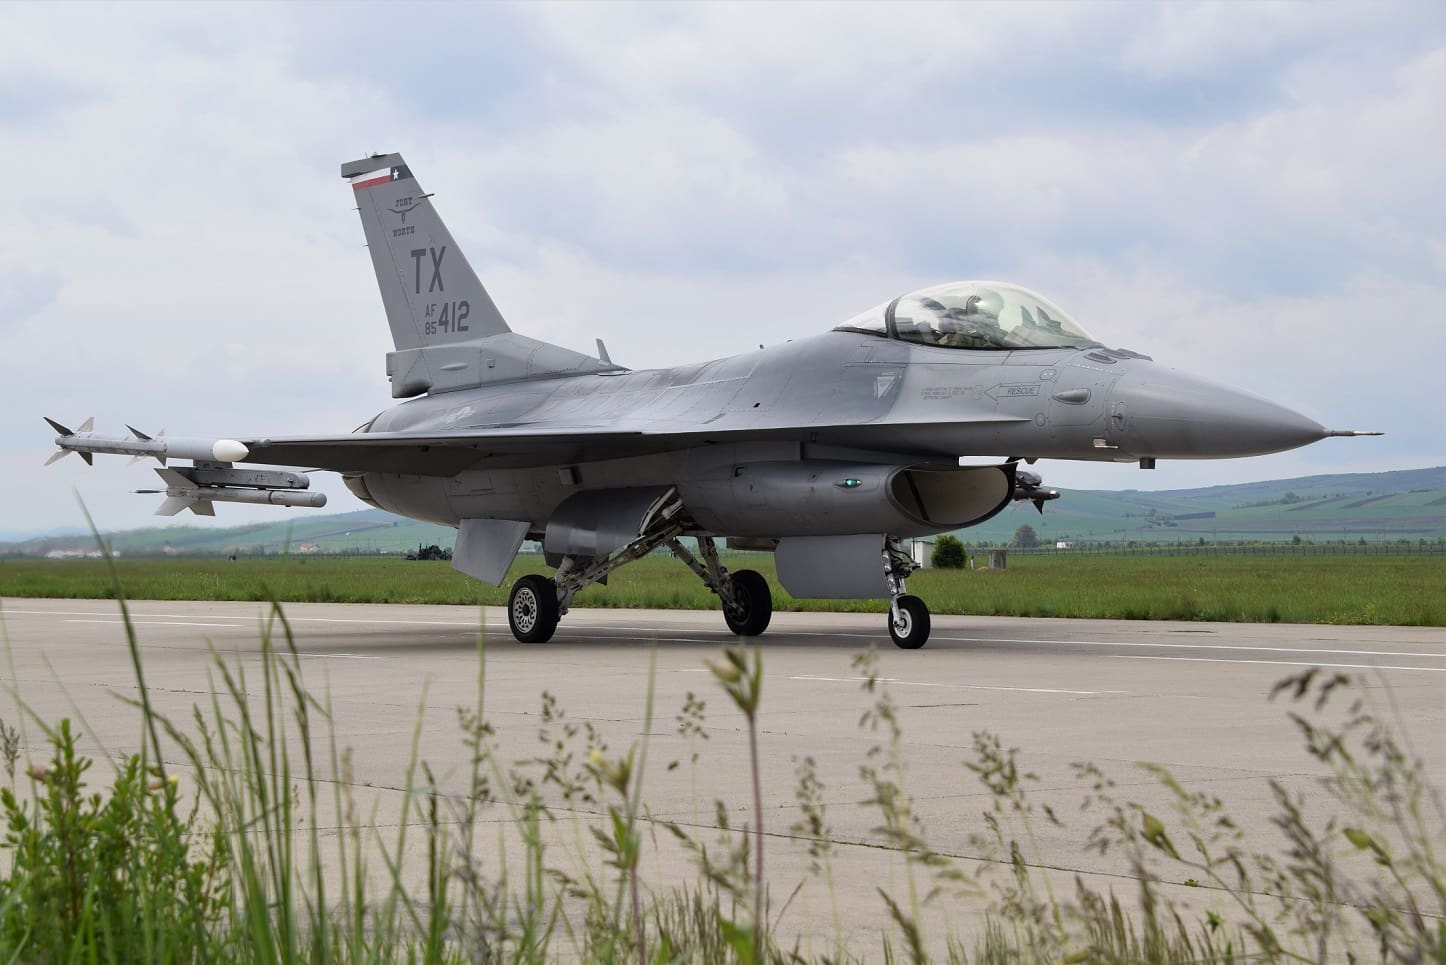 U S  F-16 Fighting Falcons to take part in joint exercises